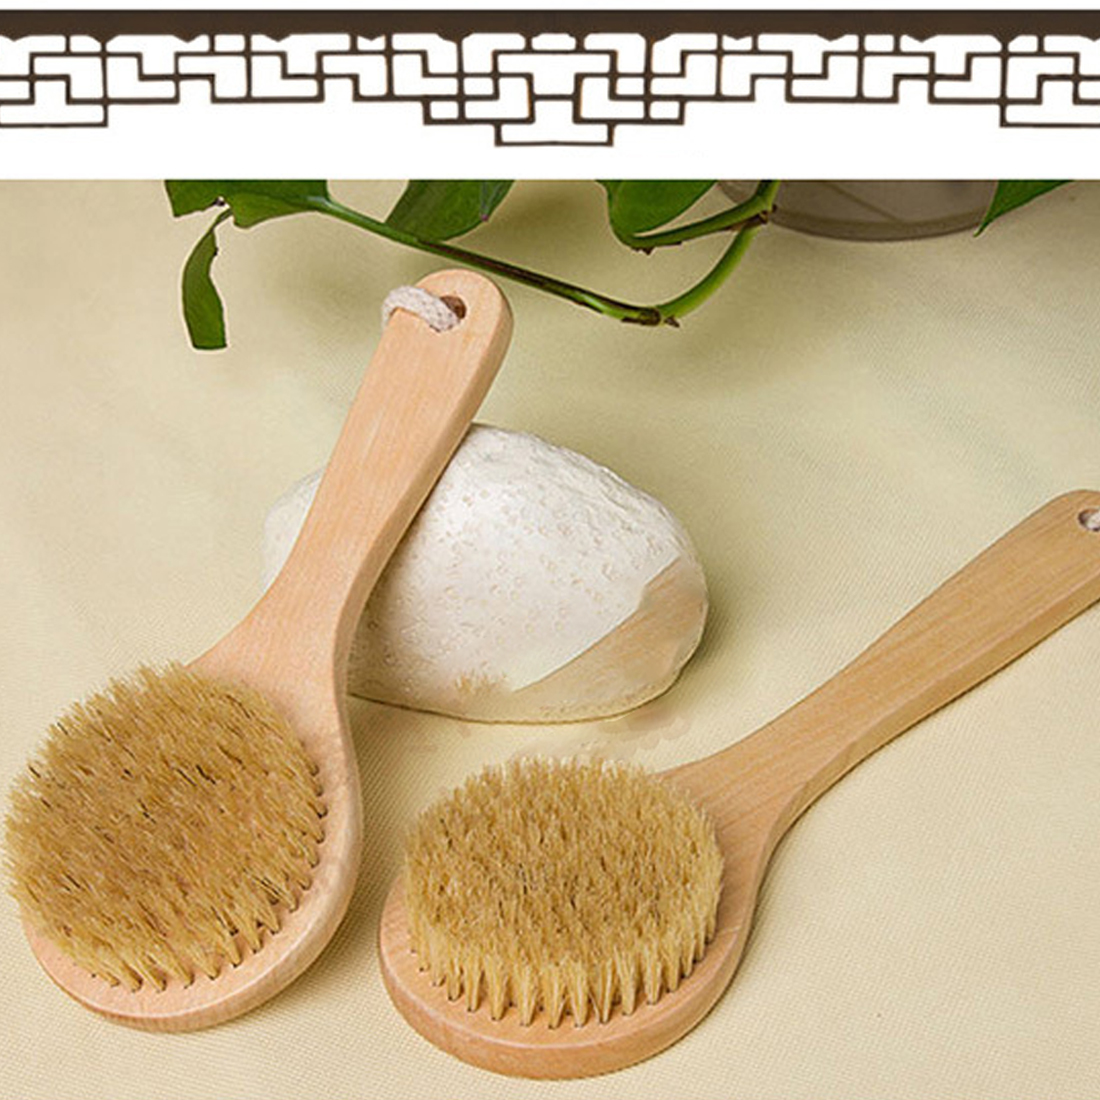 new Bath Brush Wood Handle Natural Bristle Middle Long Handle Wooden Shower Body Bath Brush Round Head Bath Accessory